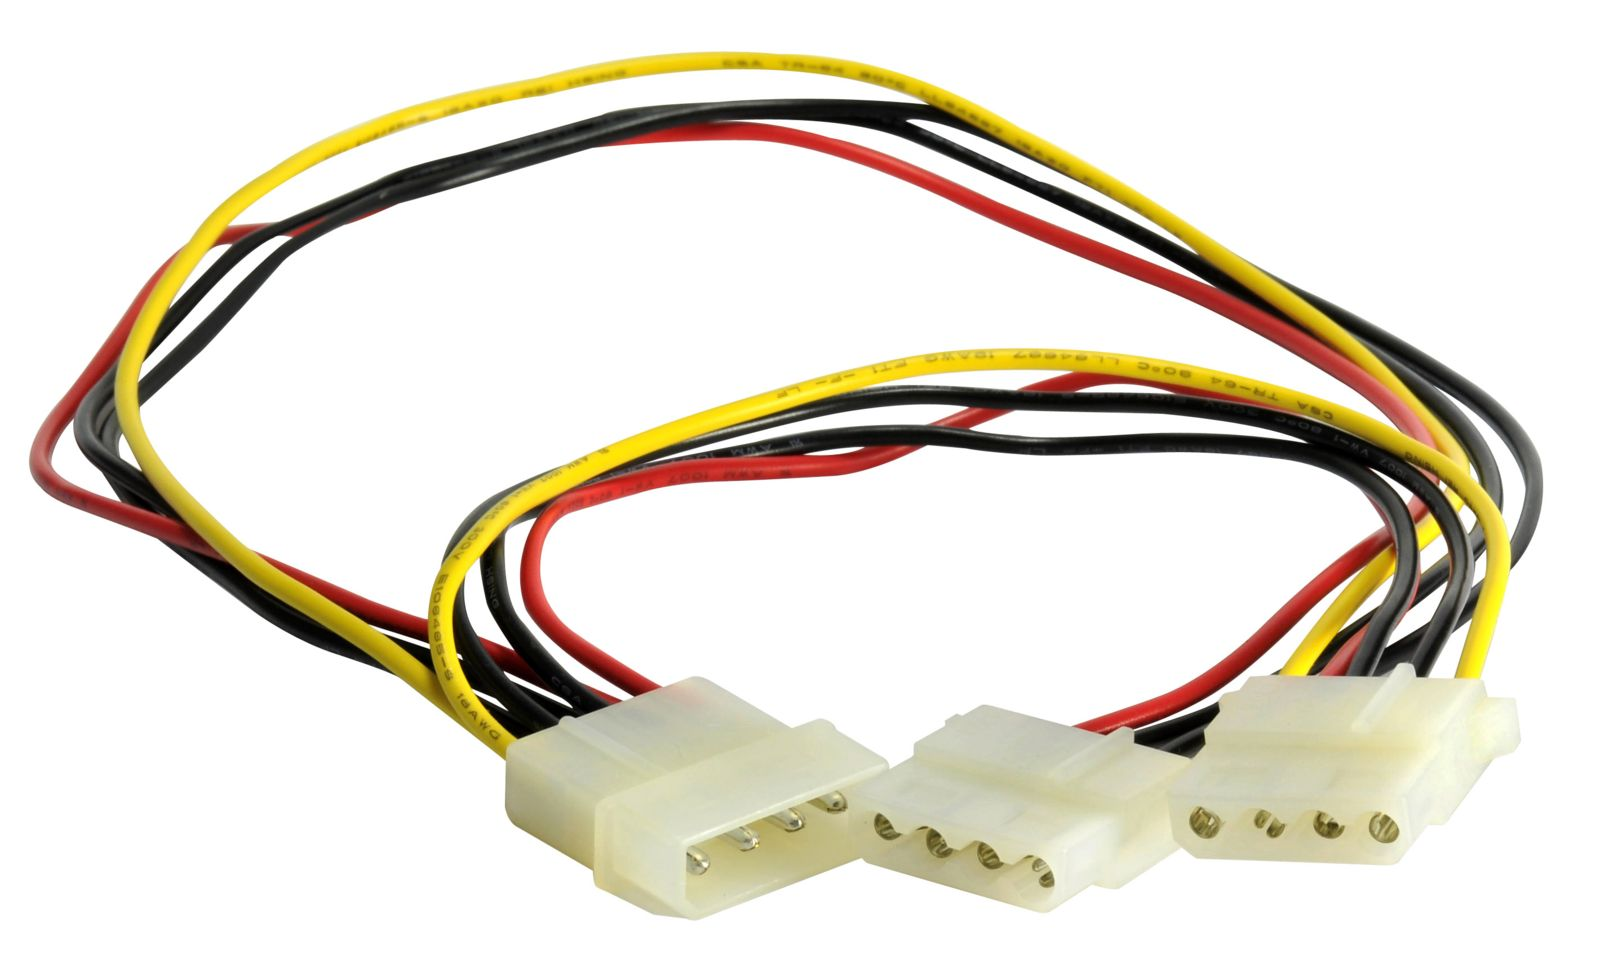 Product Power Cable : His power cable pin y